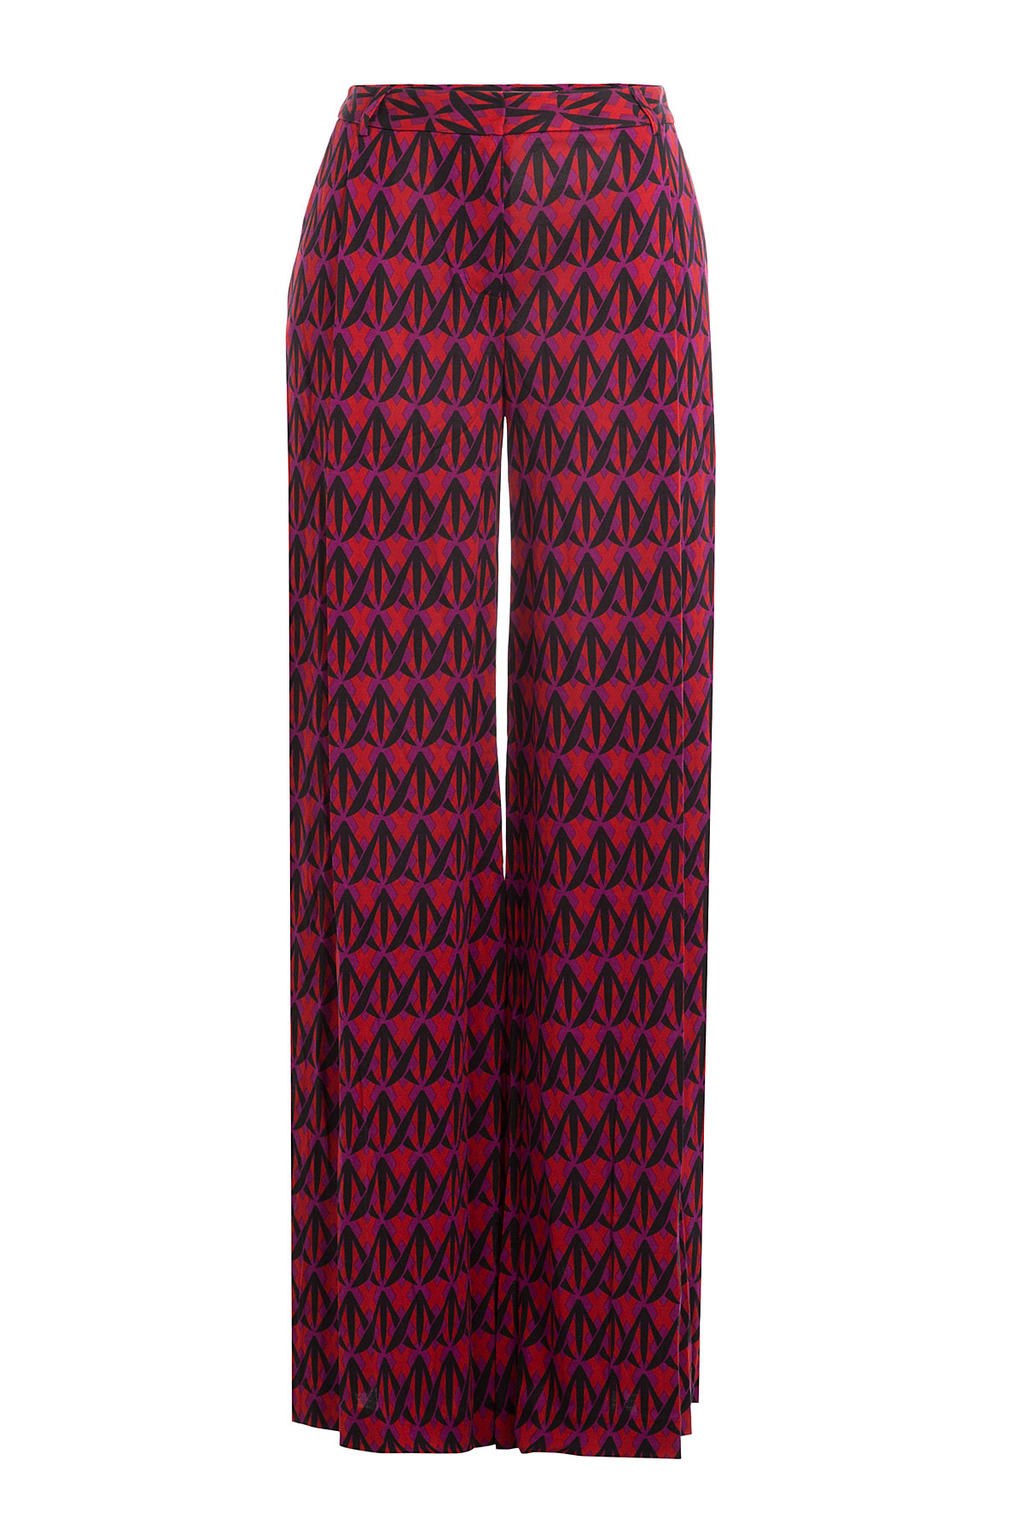 Wide Leg Printed Silk Pants Multicolor - length: standard; style: palazzo; waist: mid/regular rise; predominant colour: hot pink; secondary colour: black; occasions: casual, evening, creative work; fibres: silk - 100%; texture group: structured shiny - satin/tafetta/silk etc.; fit: wide leg; pattern type: fabric; pattern: patterned/print; multicoloured: multicoloured; season: a/w 2016